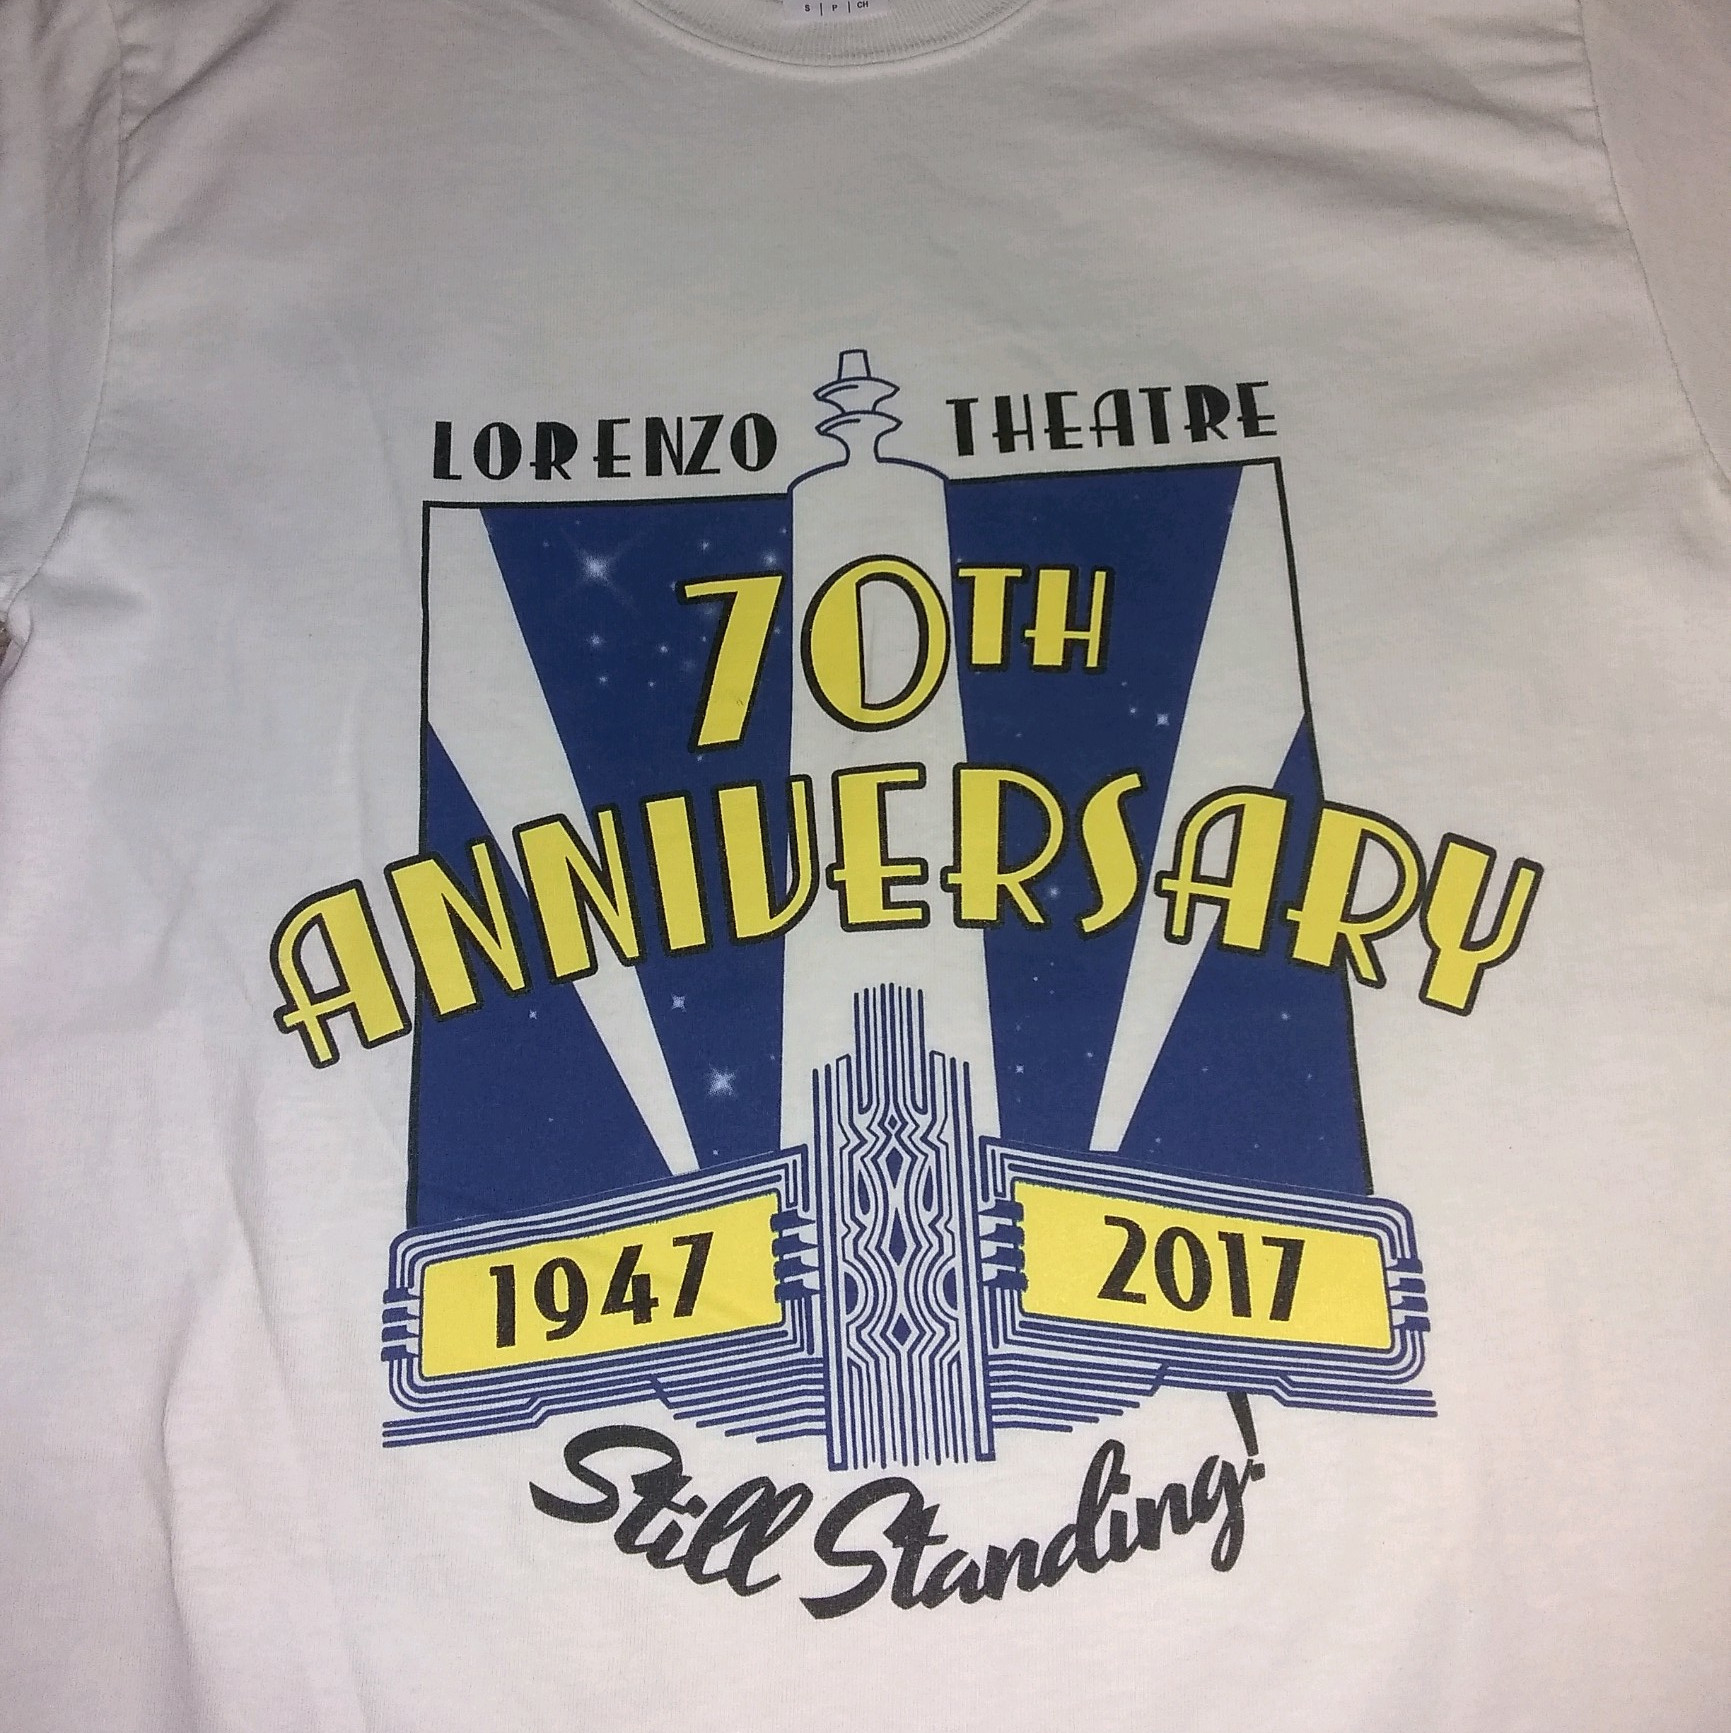 Lorenzo Theater Foundation Shirts